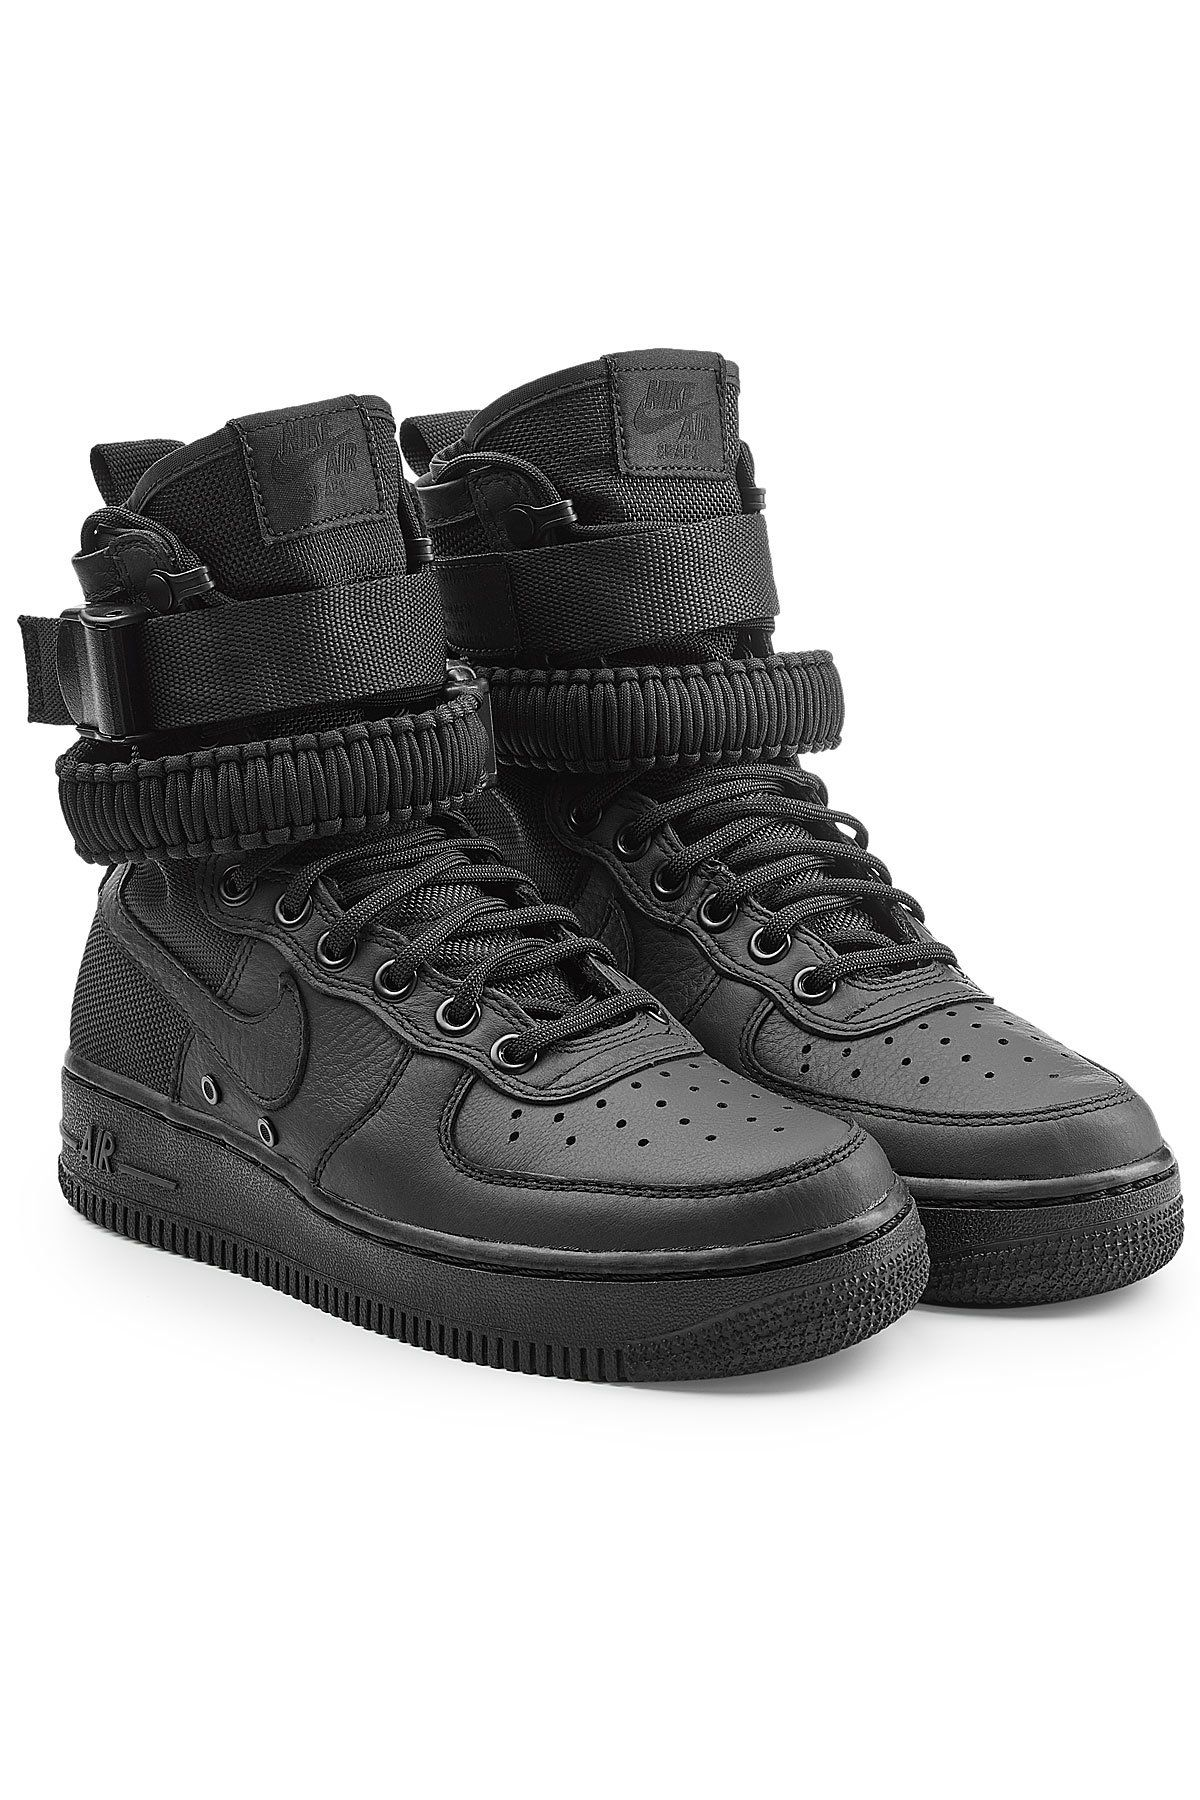 reputable site 2e237 f6ec5 NIKE SF AIR FORCE 1 HIGH TOP SNEAKERS WITH LEATHER.  nike  shoes